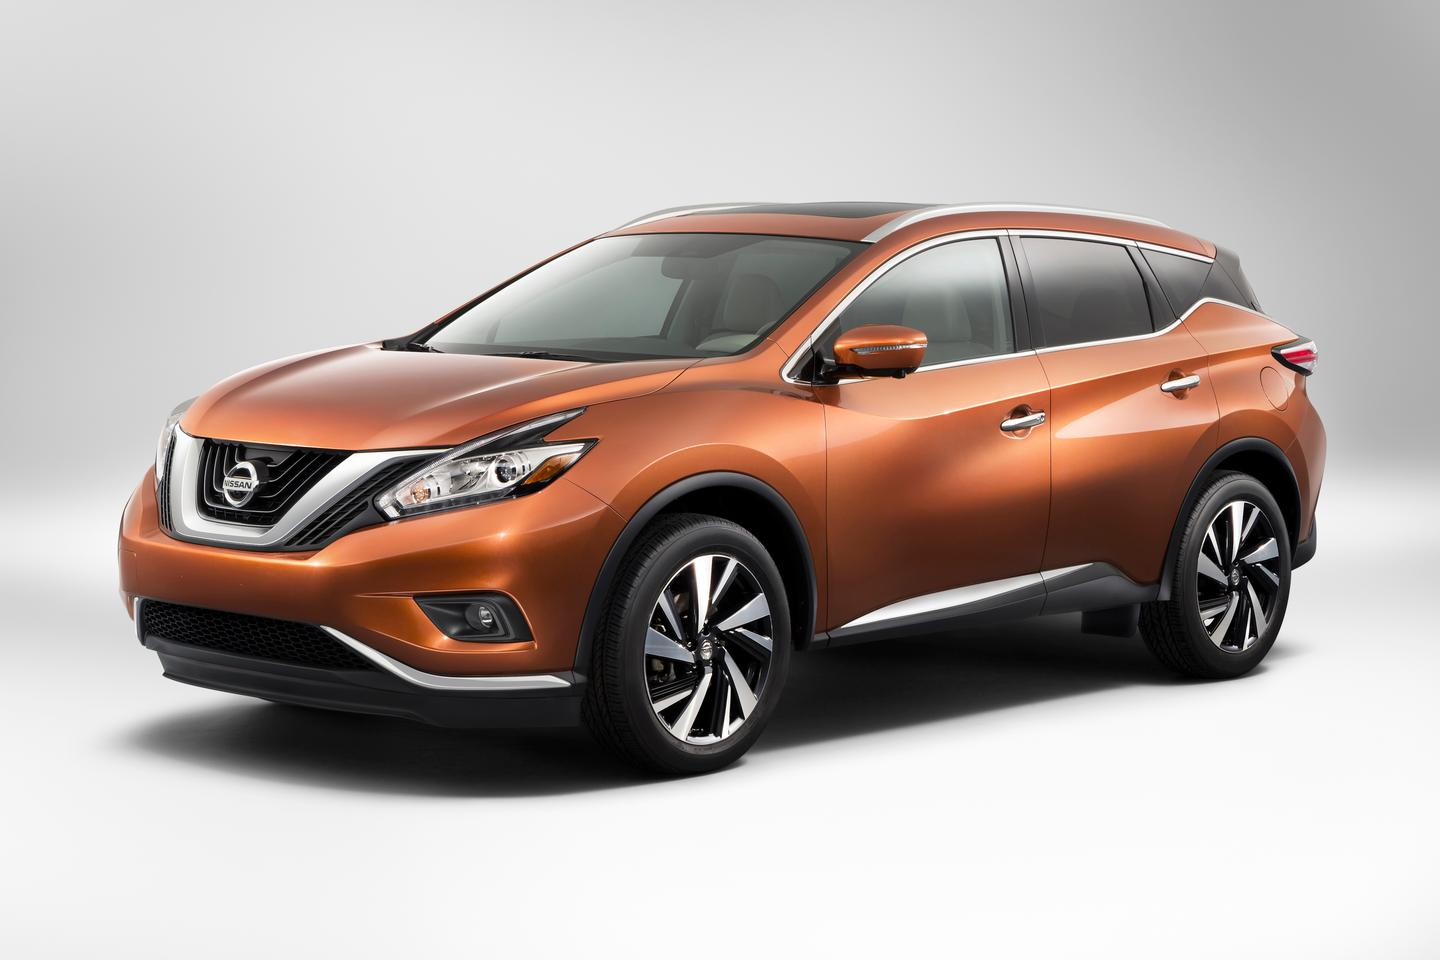 The new Murano is claimed to be 16 percent more aerodynamic than the previous model